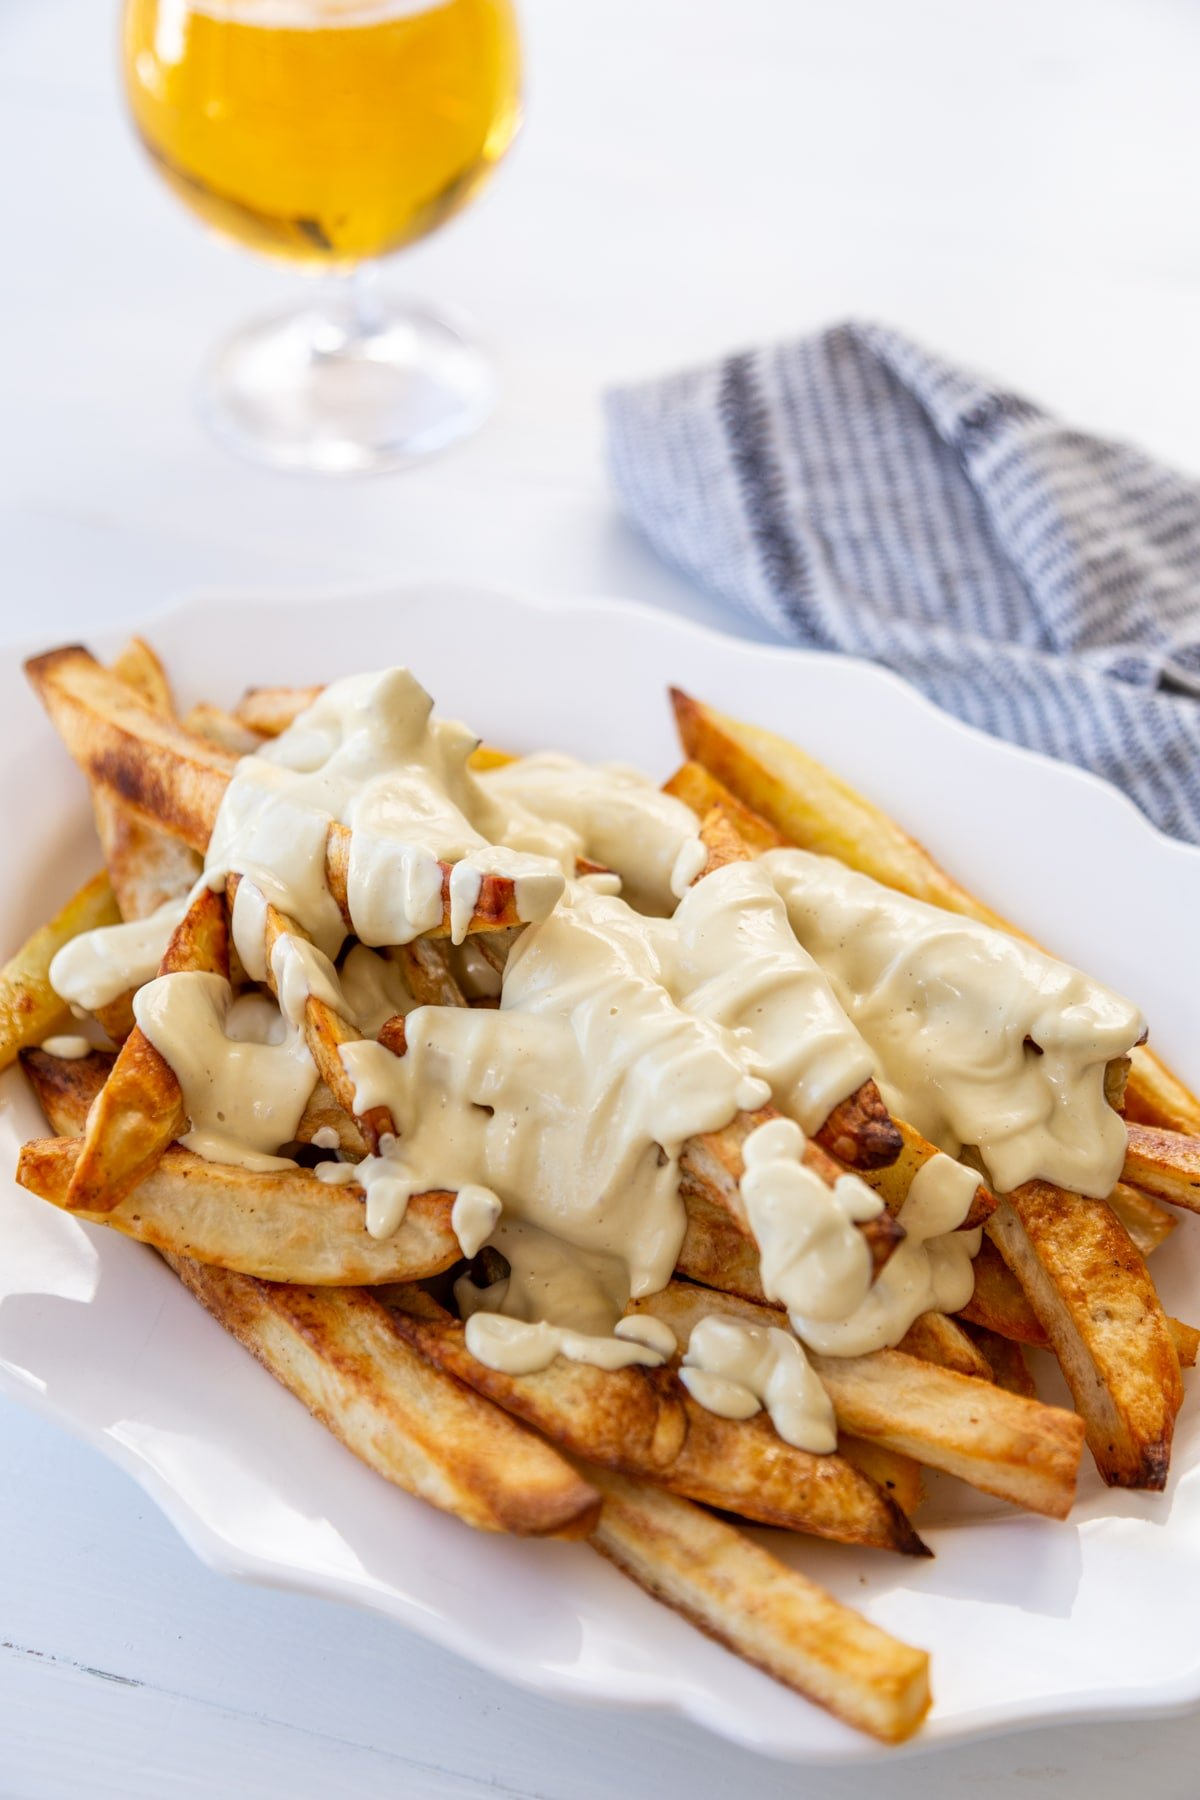 A platter of fried with cheese sauce and gravy next to a glass of beer and a black and white napkin.